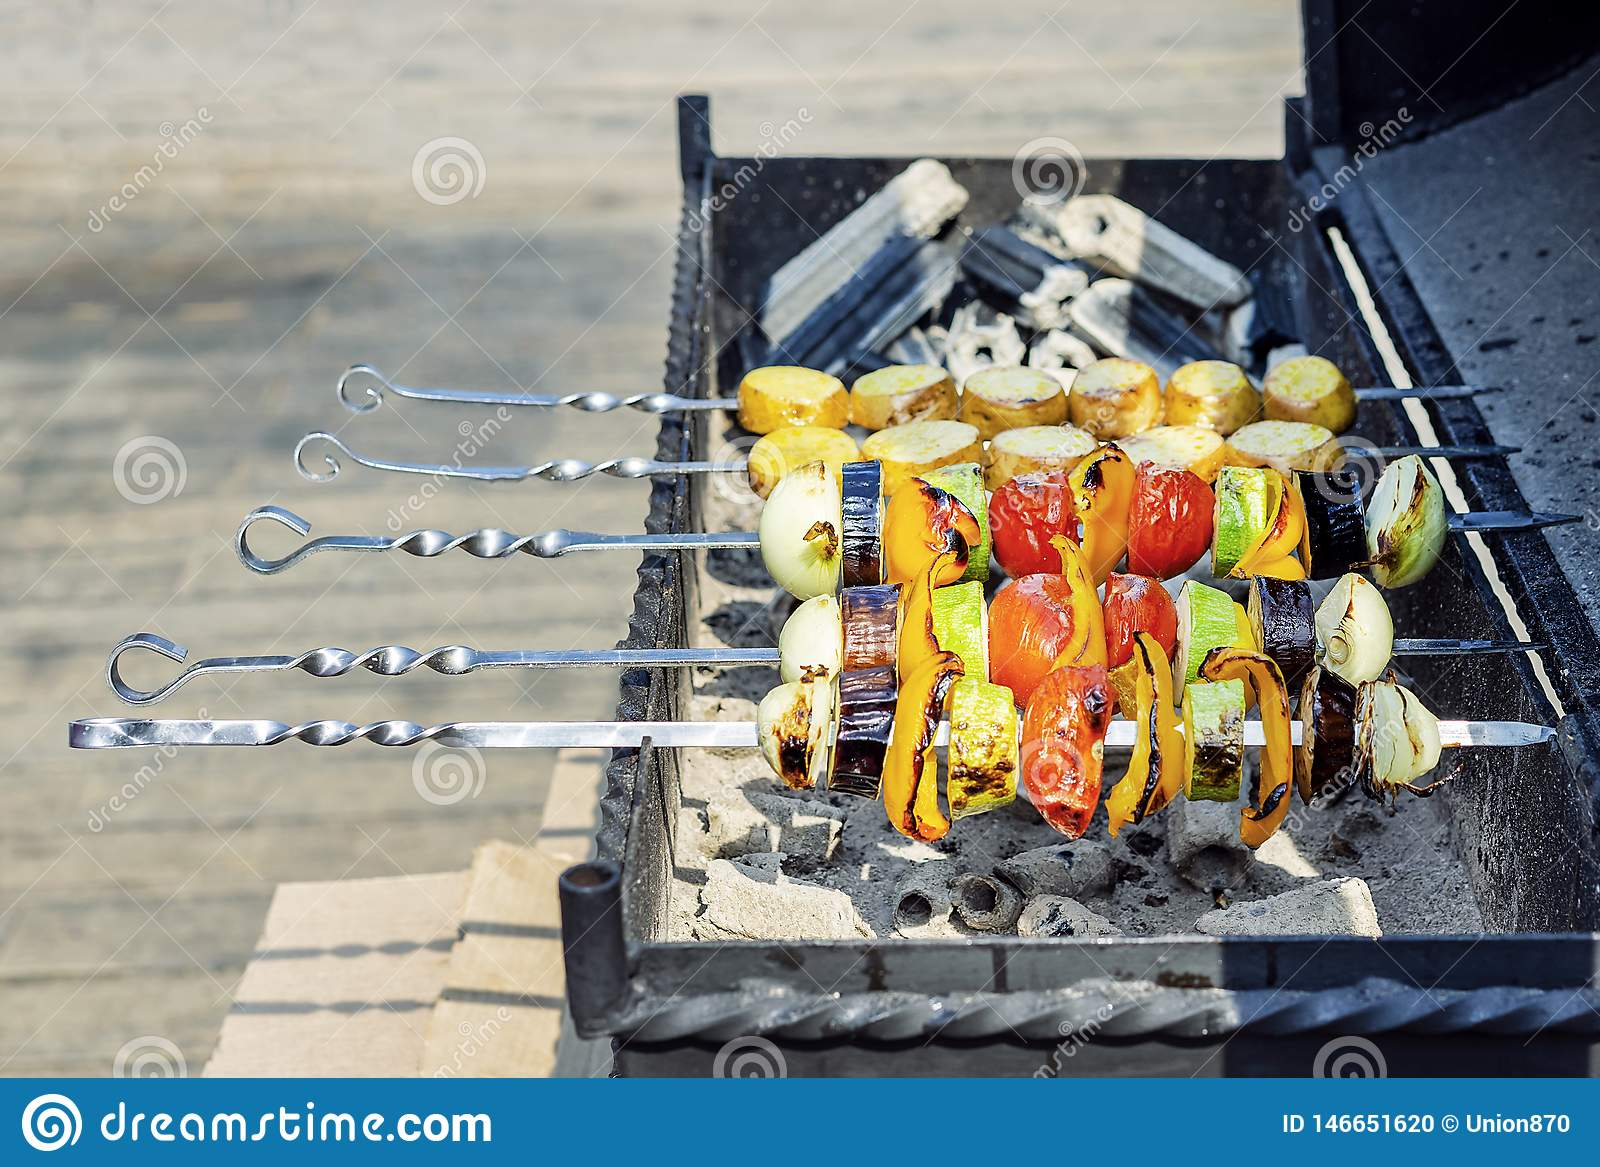 Colorful vegetarian vegetable skewers with roasted bell peppers, onions, eggplants, tomatoes and zucchini